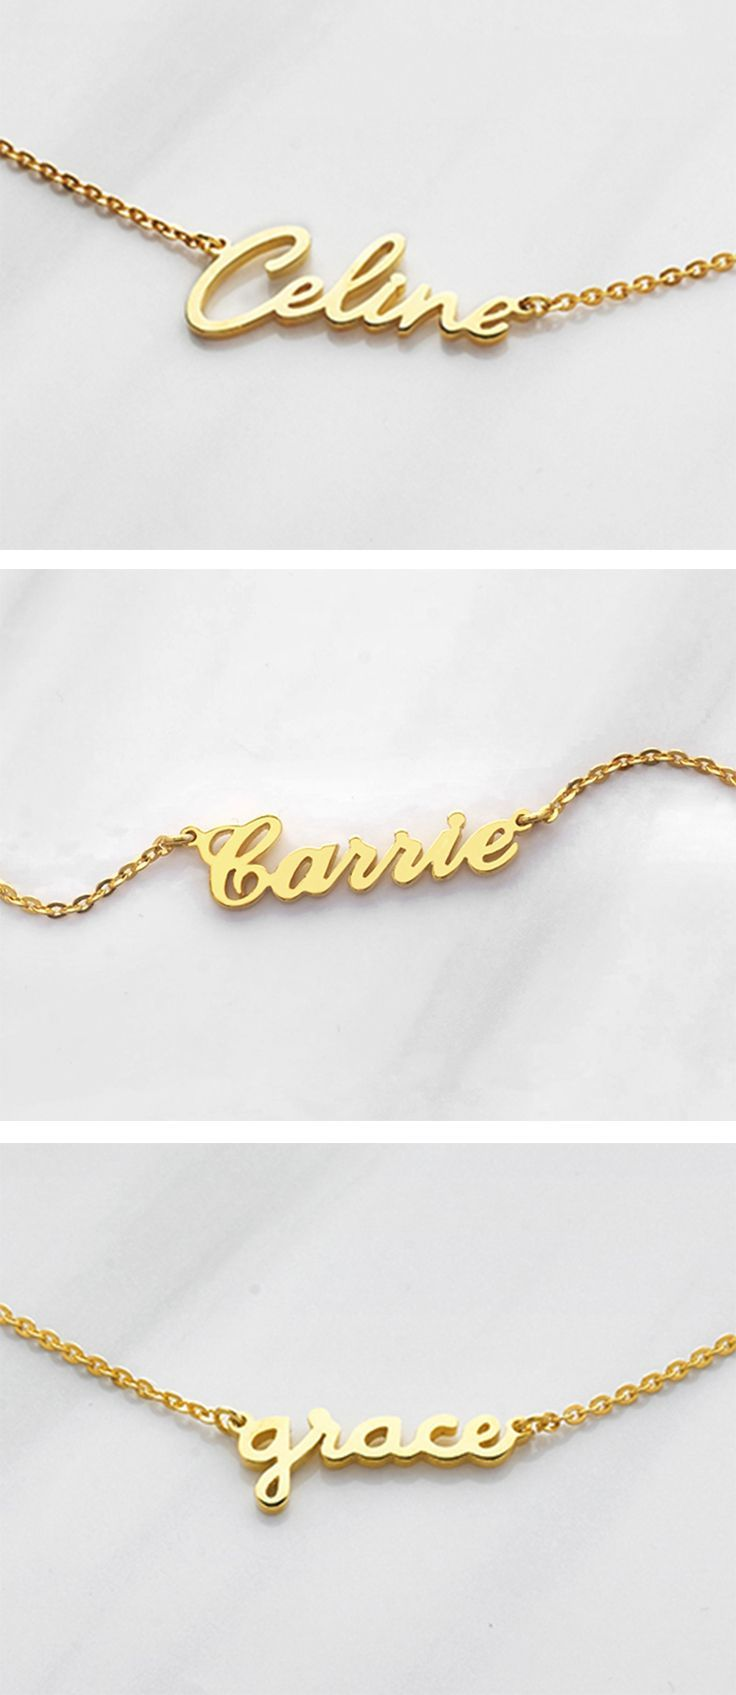 Gold name necklace goldplated name necklace silver name necklace